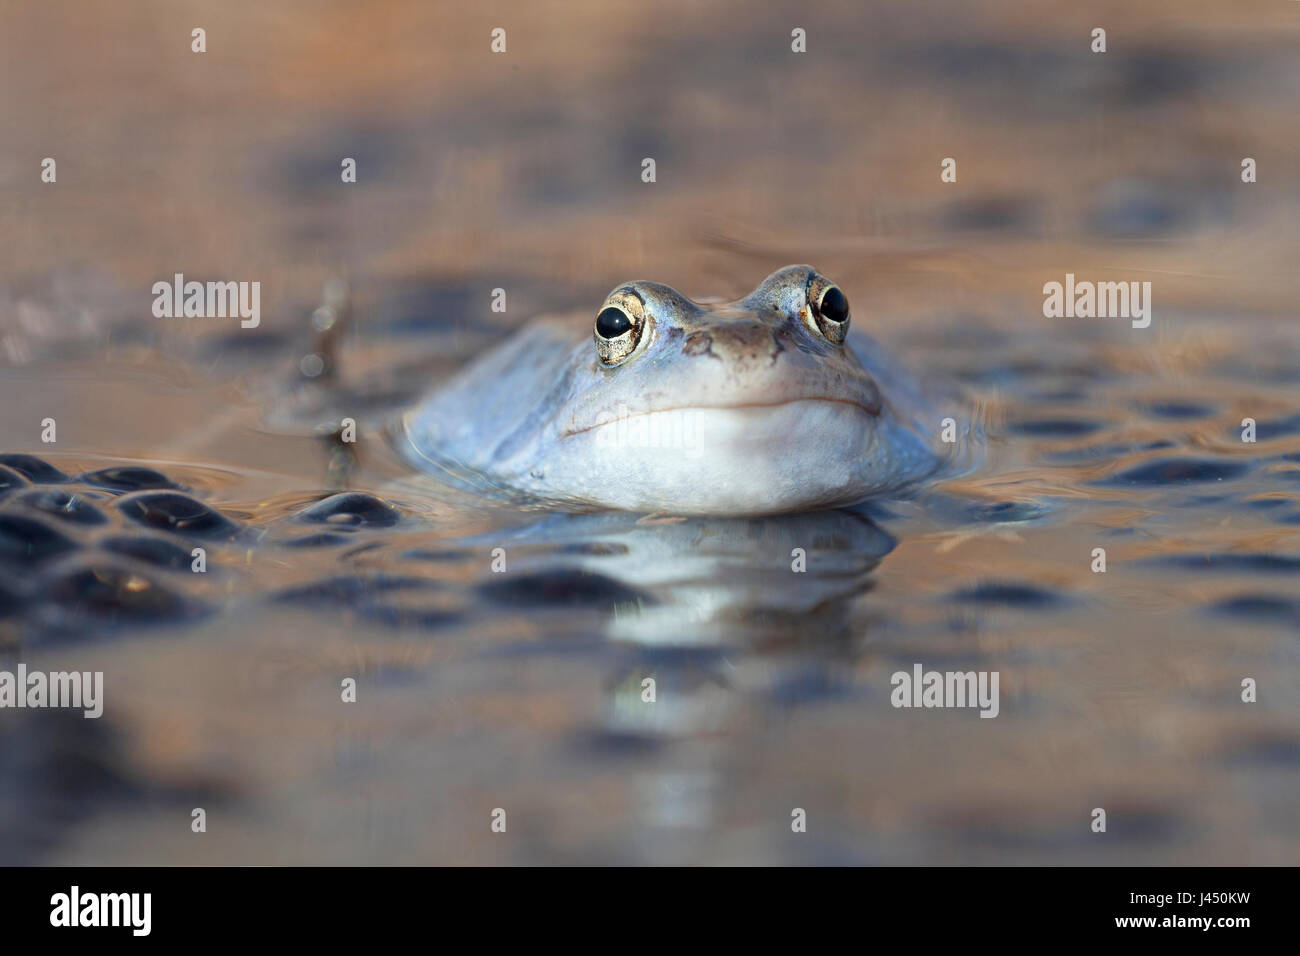 portrait of a blue male moor frog - Stock Image